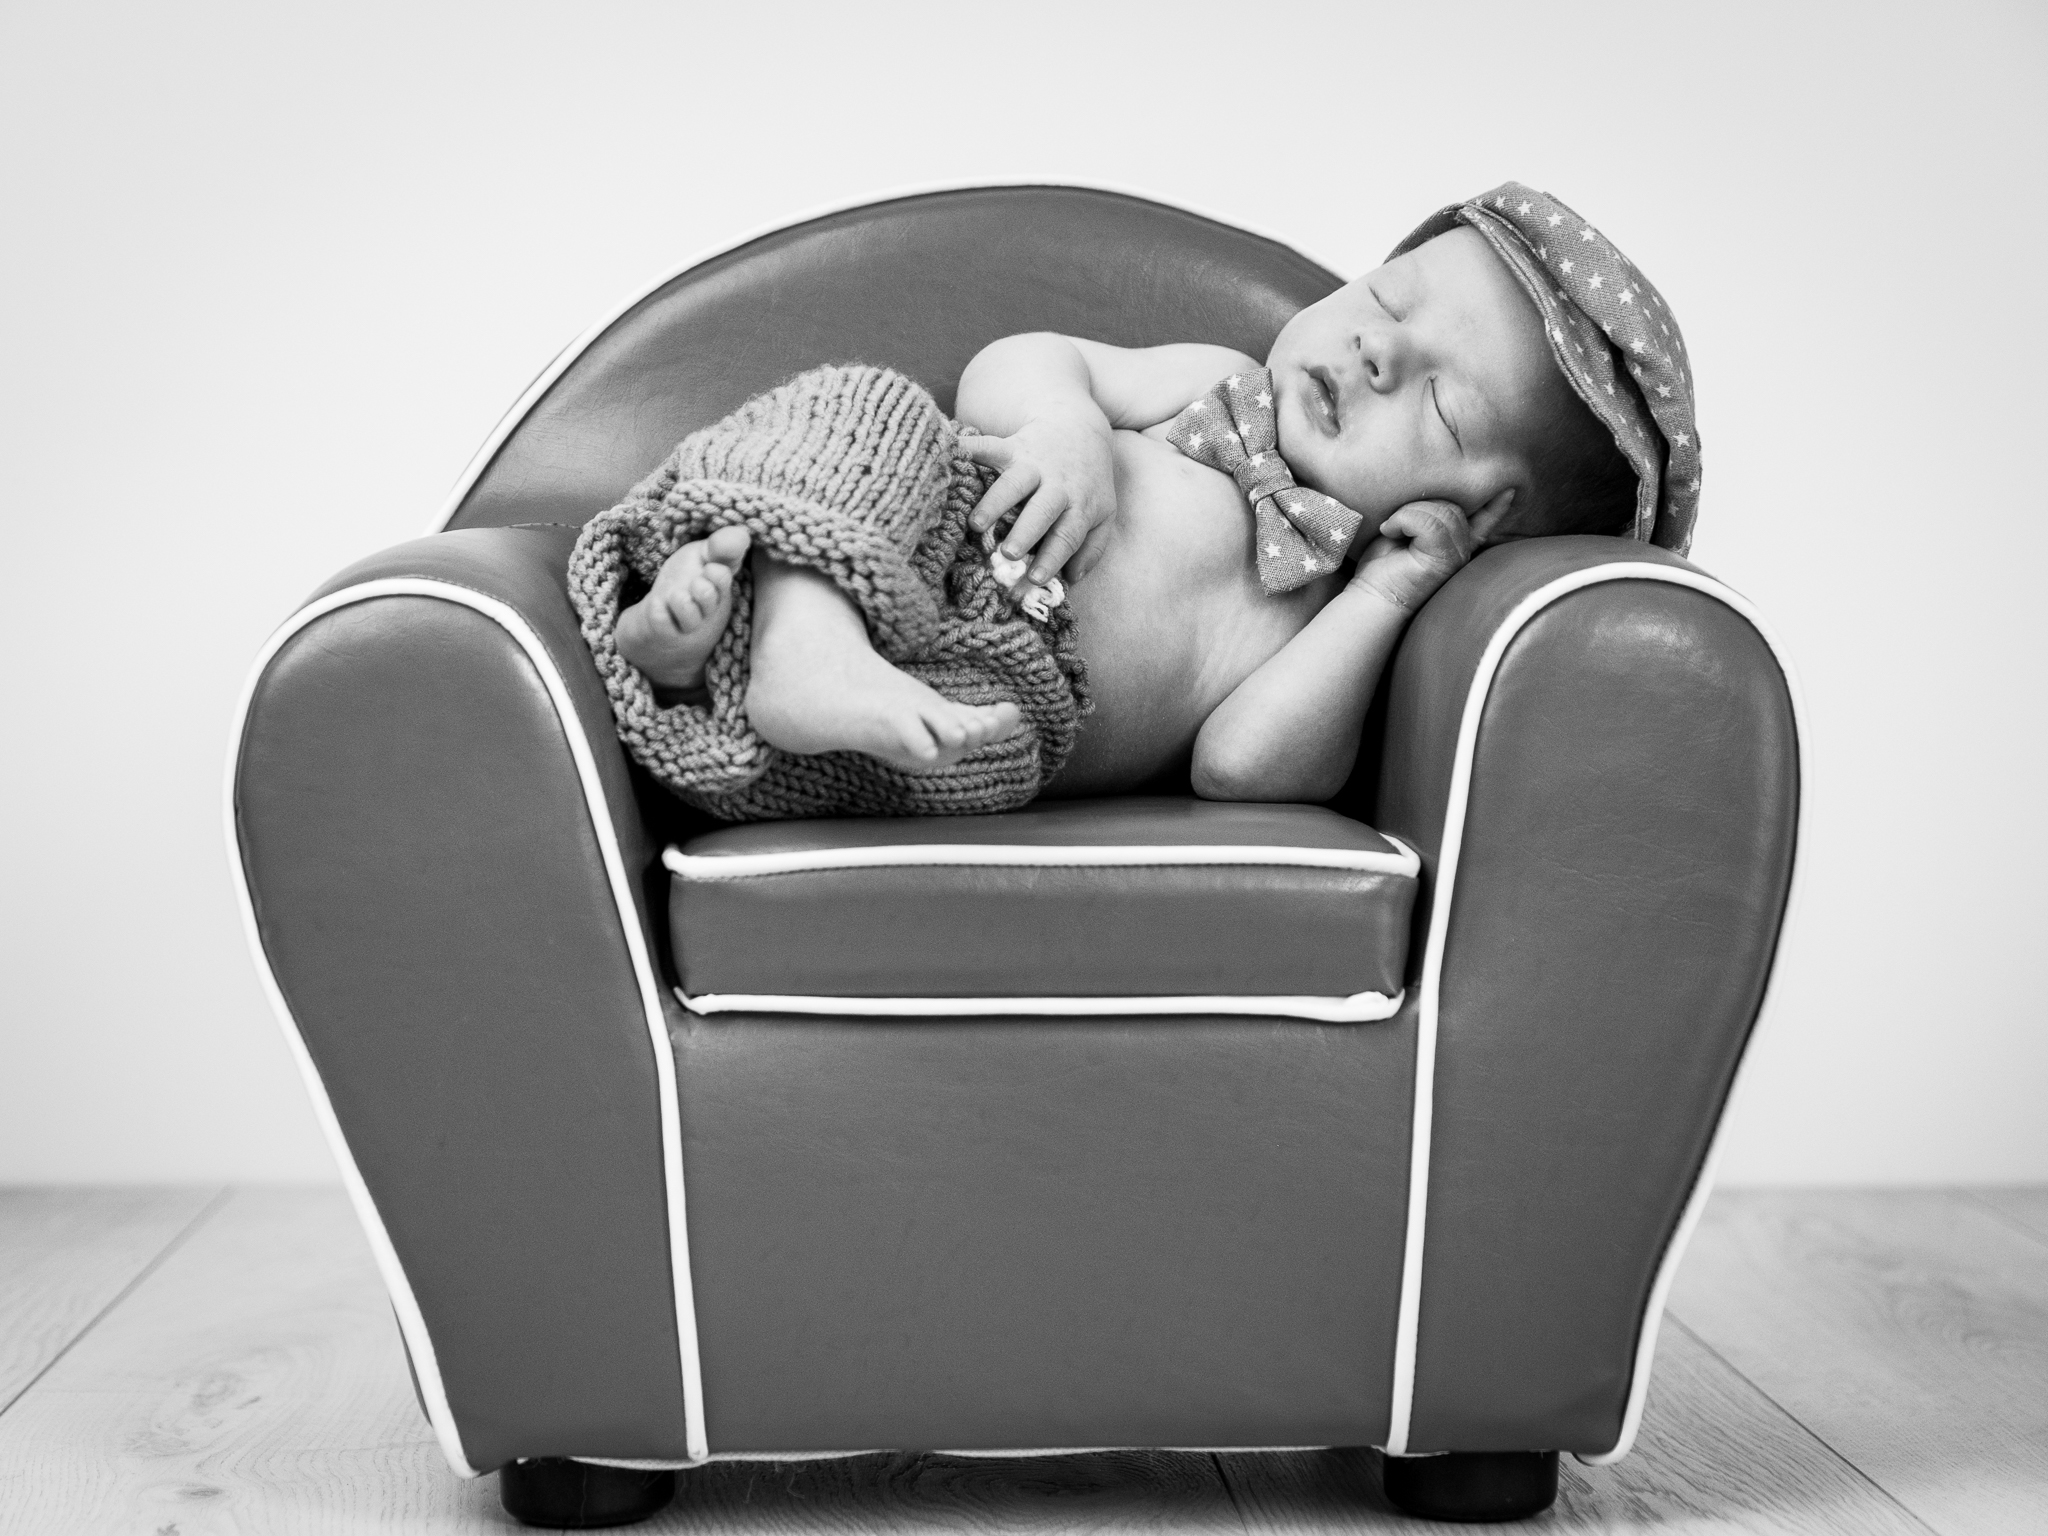 Baby on Chair asleep